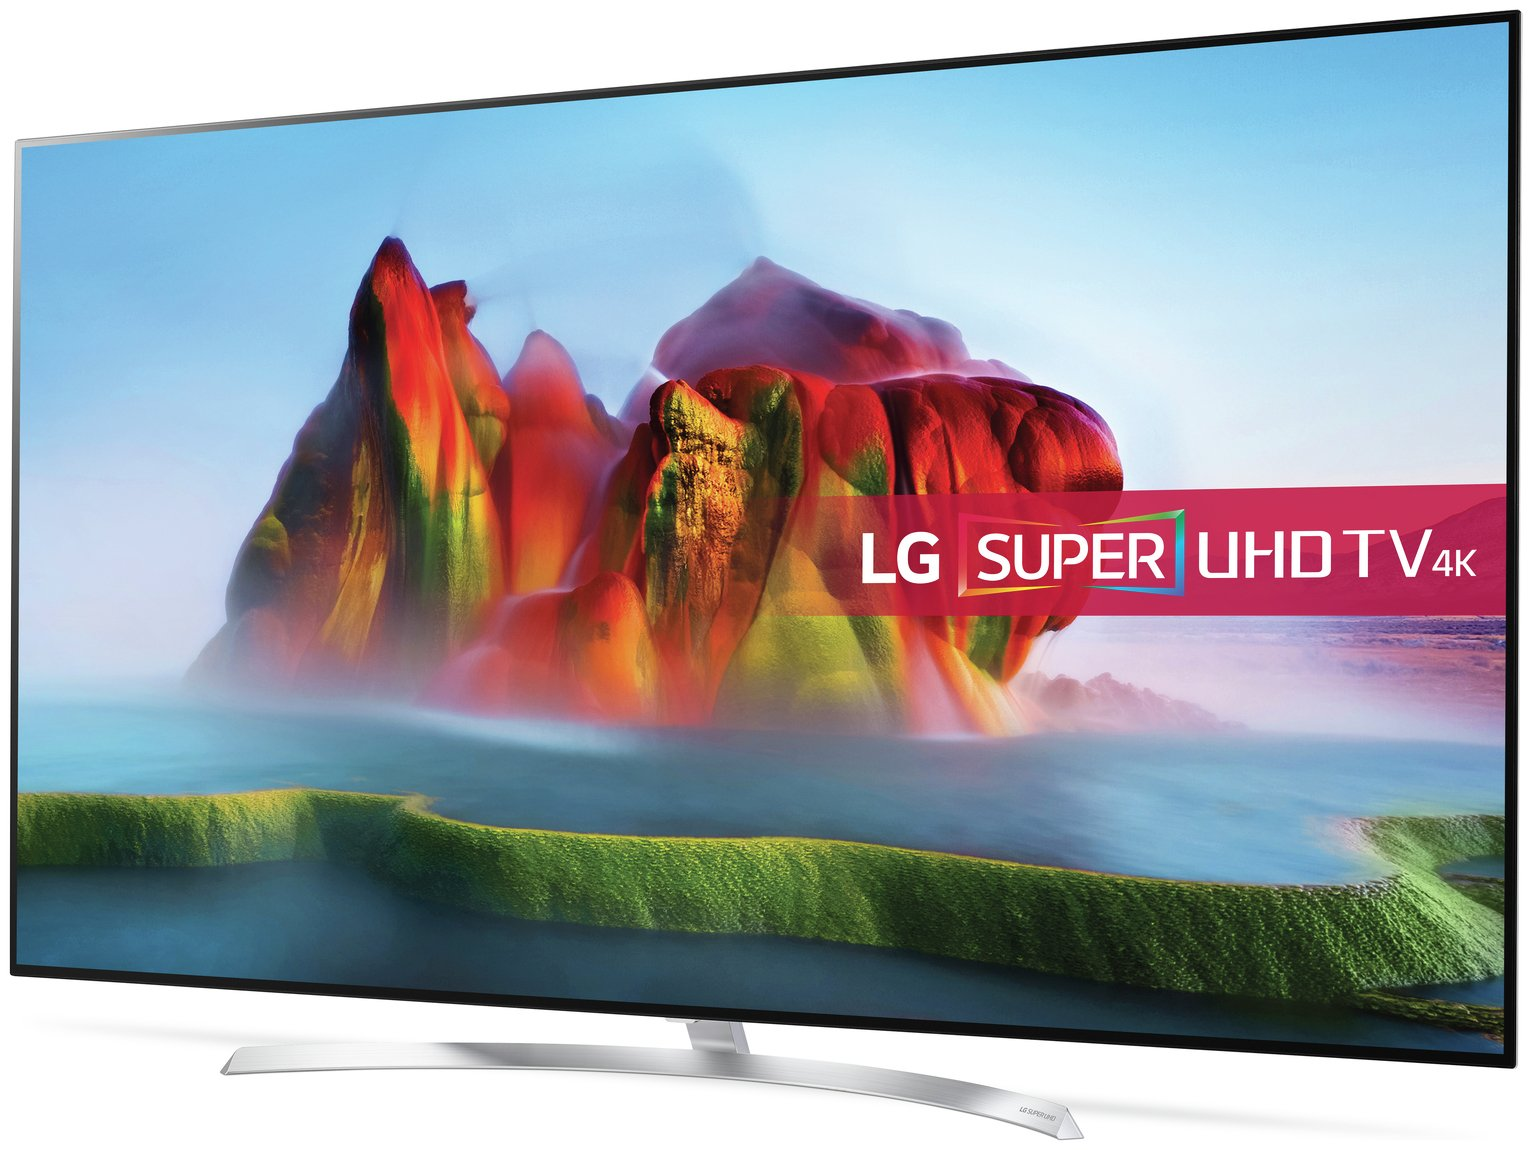 LG LG 65SJ850V 65 Inch Smart 4K Ultra HD TV with HDR